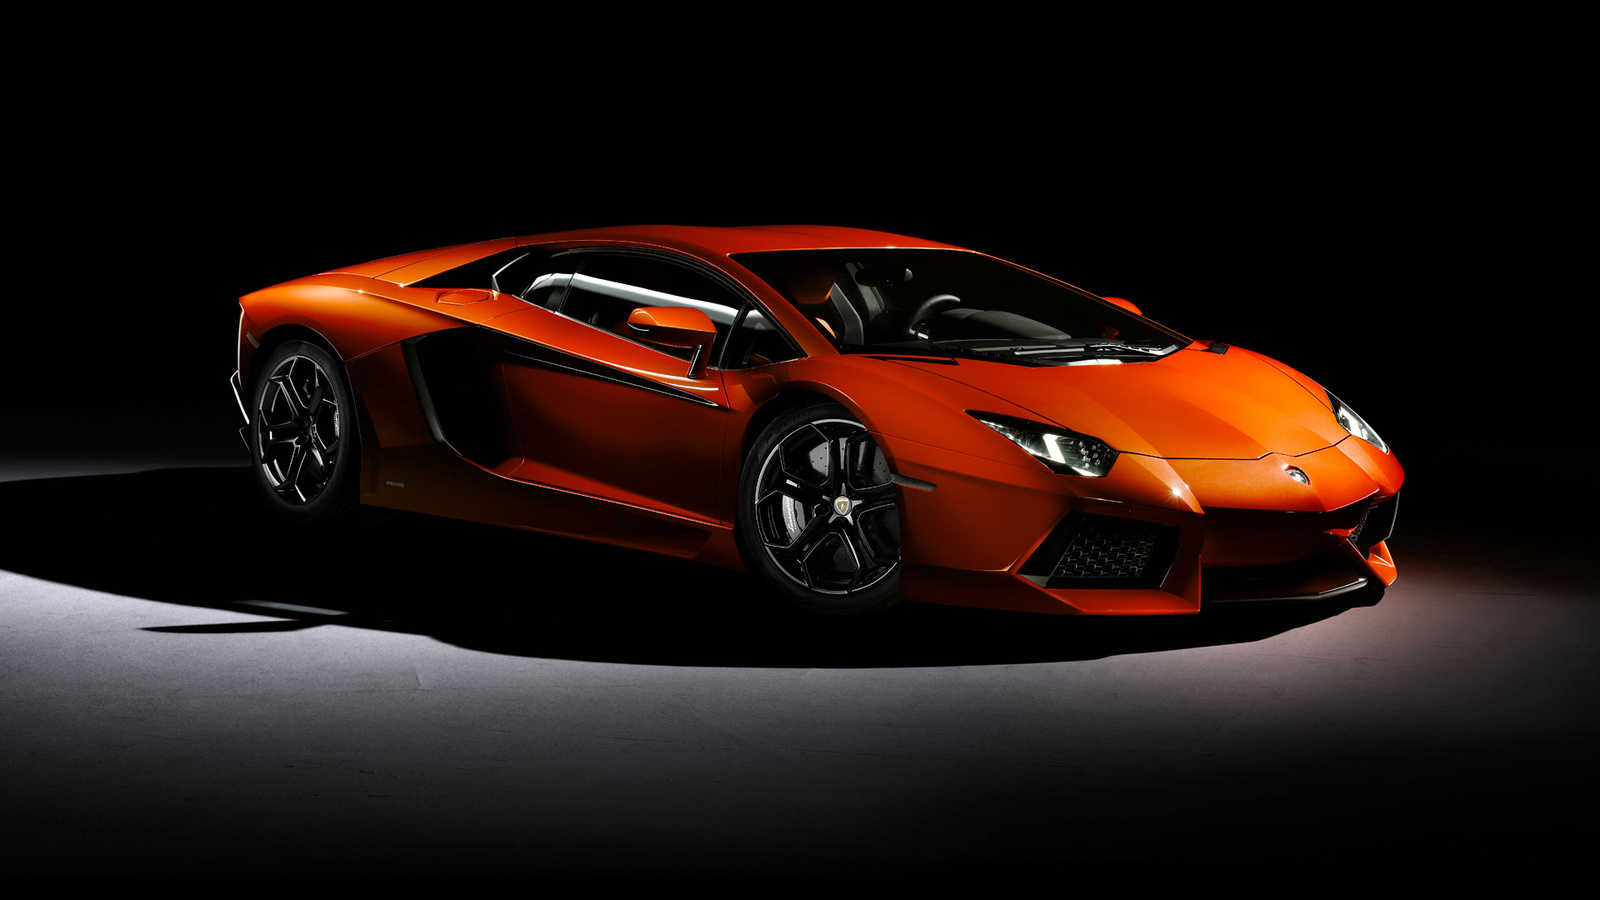 Lamborghini Images Aventador Hd Wallpaper And Background Photos